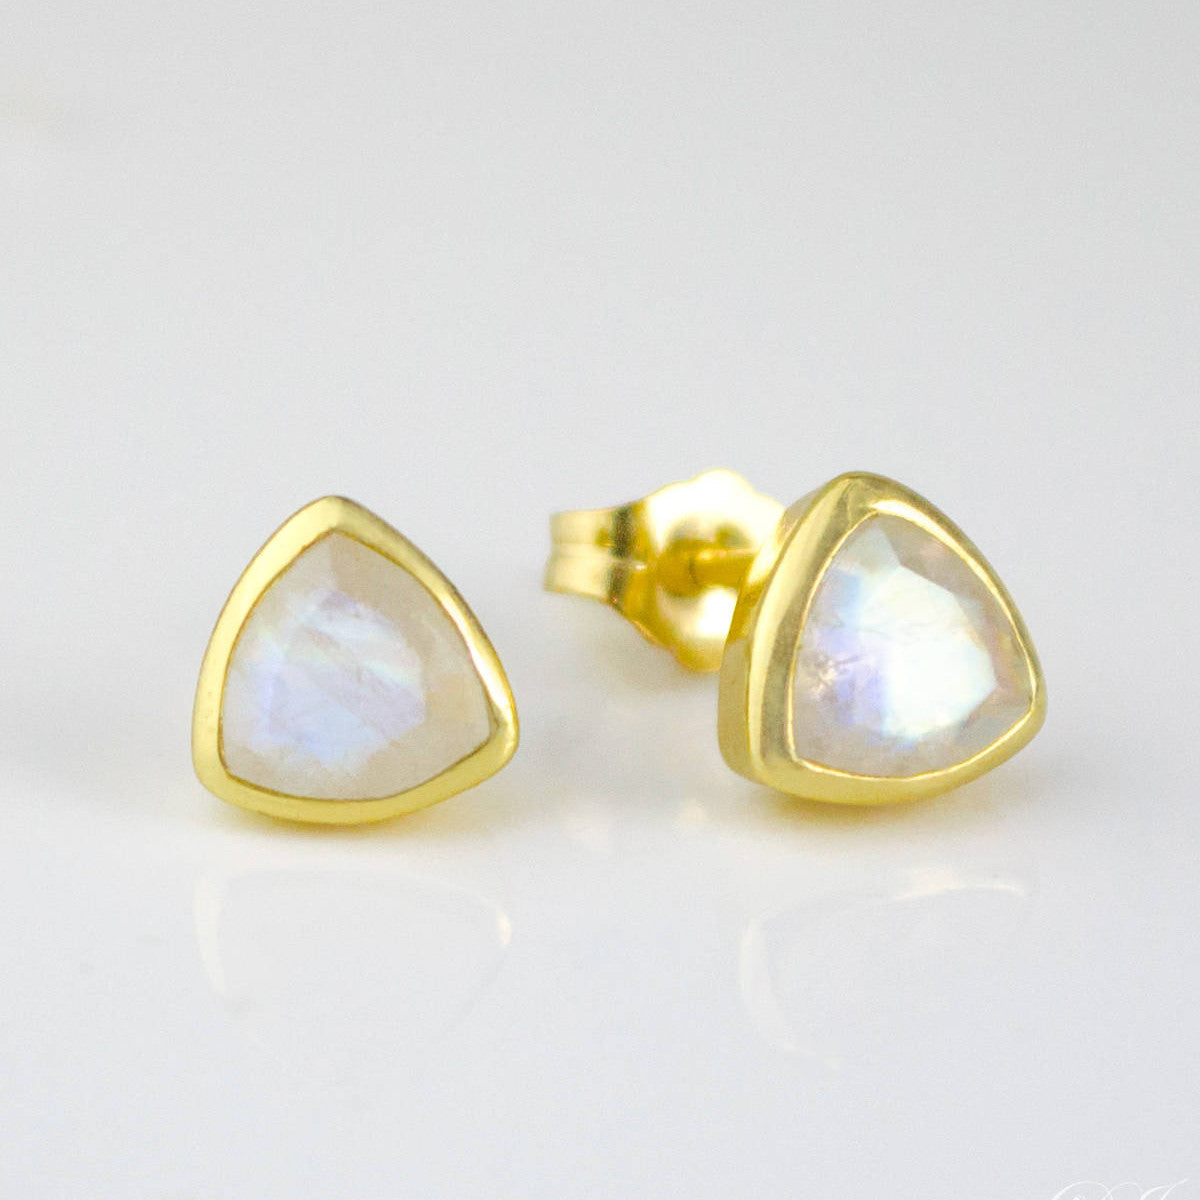 earrings everyday by com silver product hoop original xissjewellery notonthehighstreet